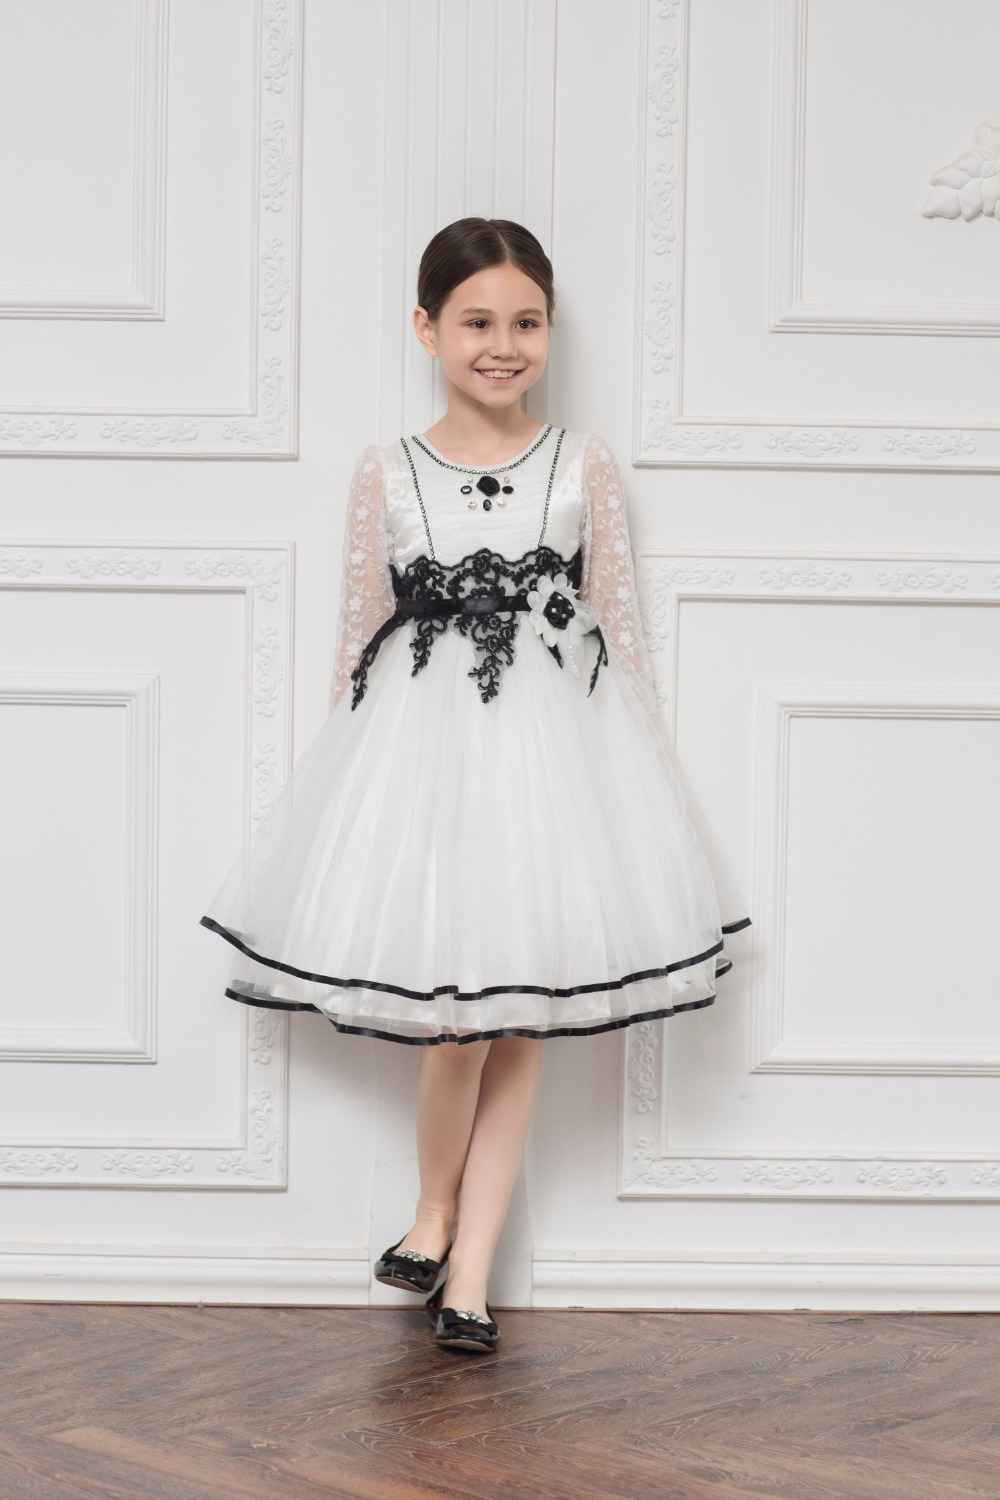 Elegant organza beading black applique lace a line flower girls elegant organza beading black applique lace a line flower girls dress for wedding bow sash first communion prom dresses for girl mightylinksfo